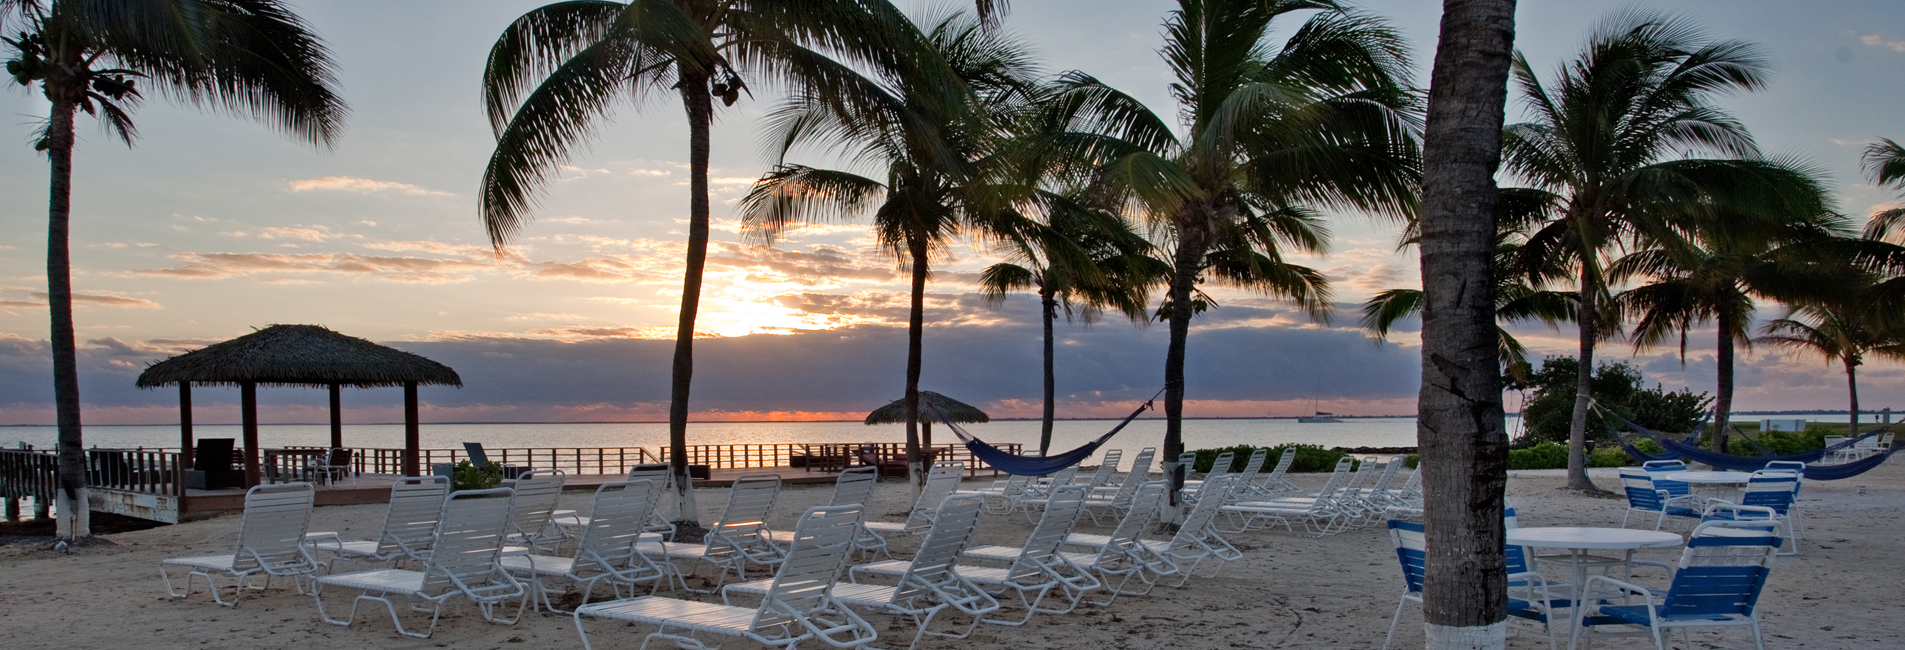 Hotels near 7 mile beach in Grand Cayman